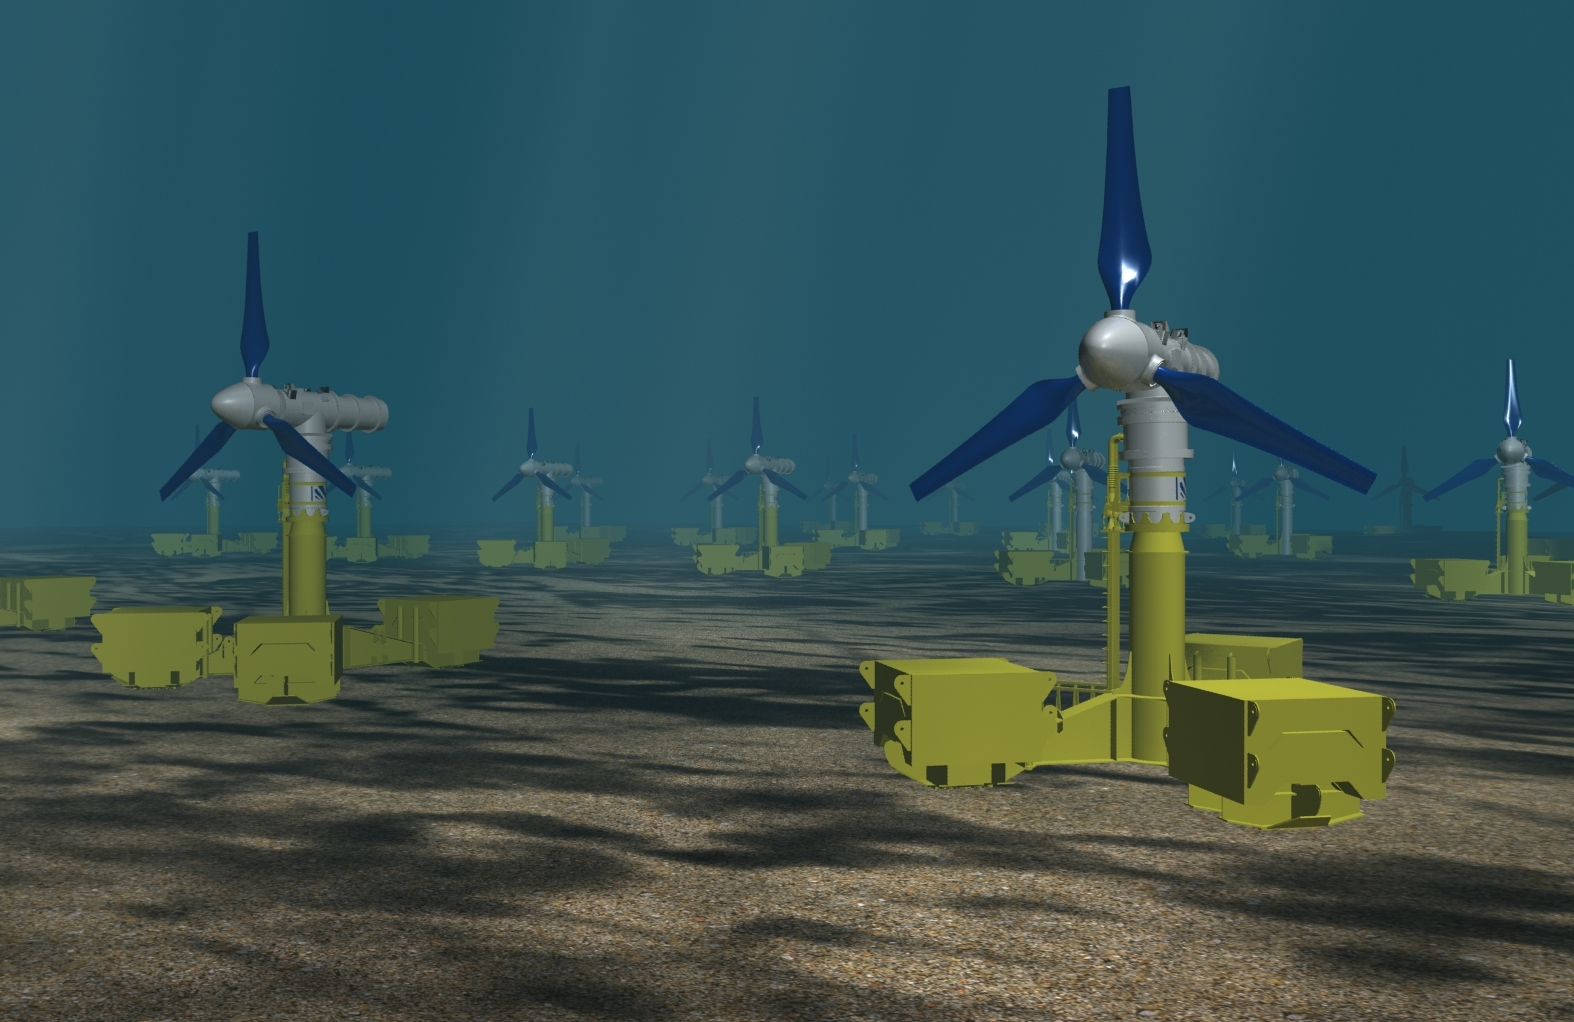 Tidal energy can be harnessed